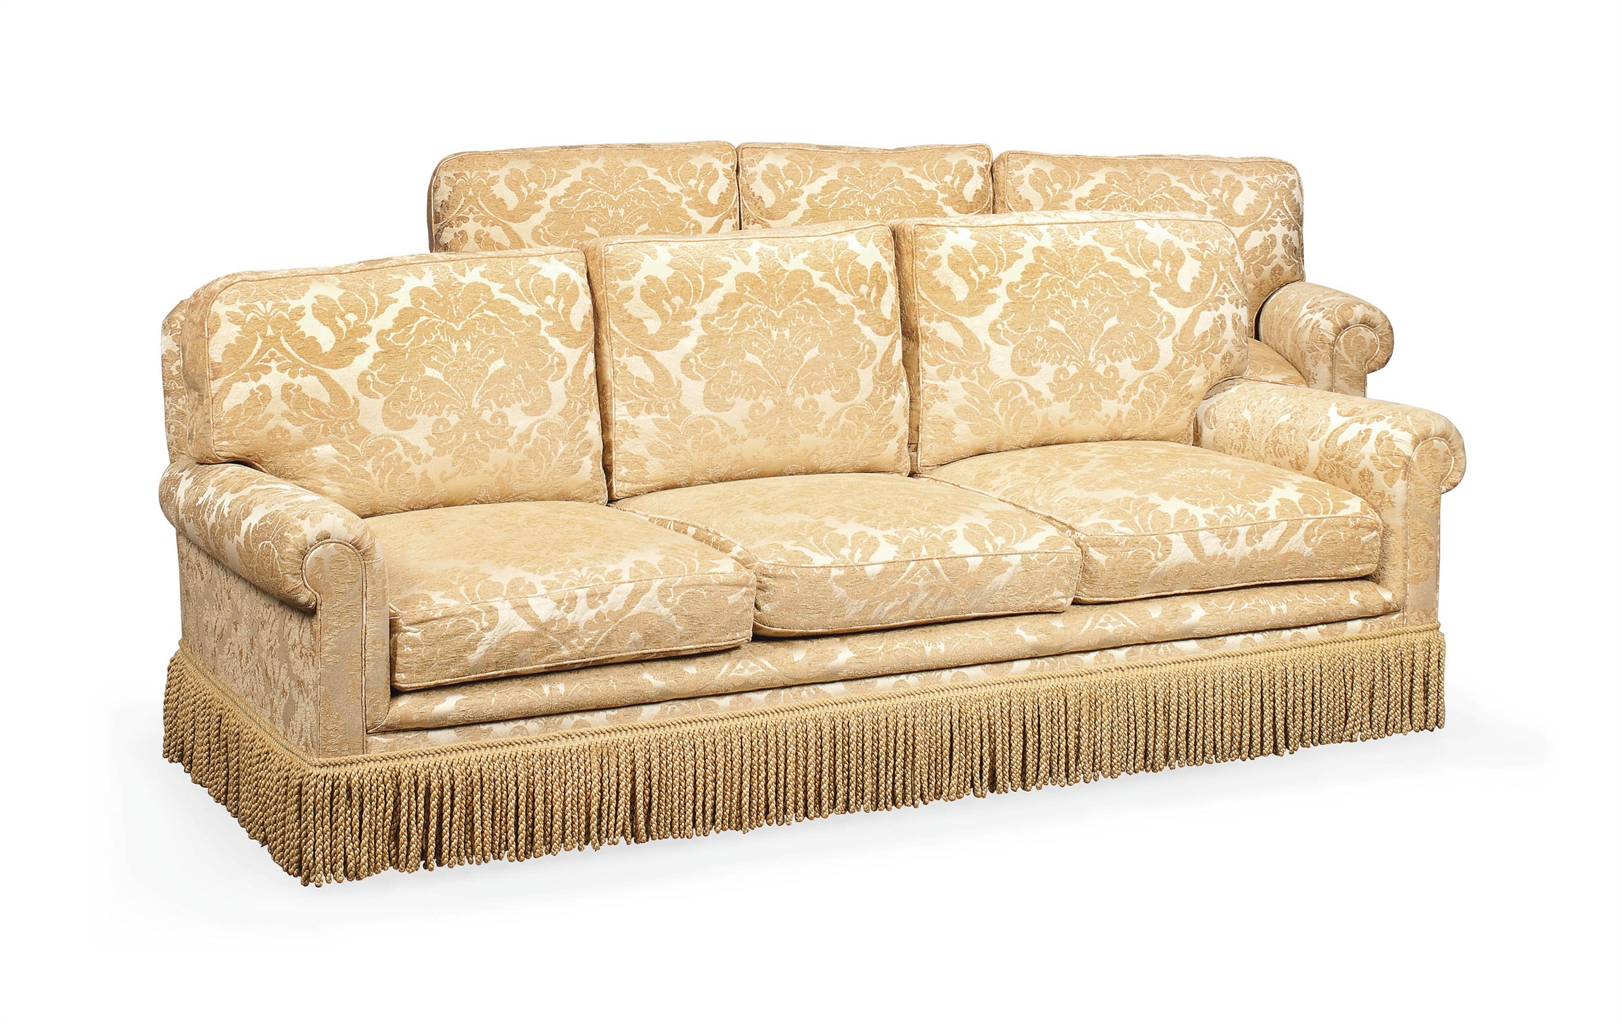 kingcome sofa sale wood furniture designs a pair of cream and buff damask sofas by late